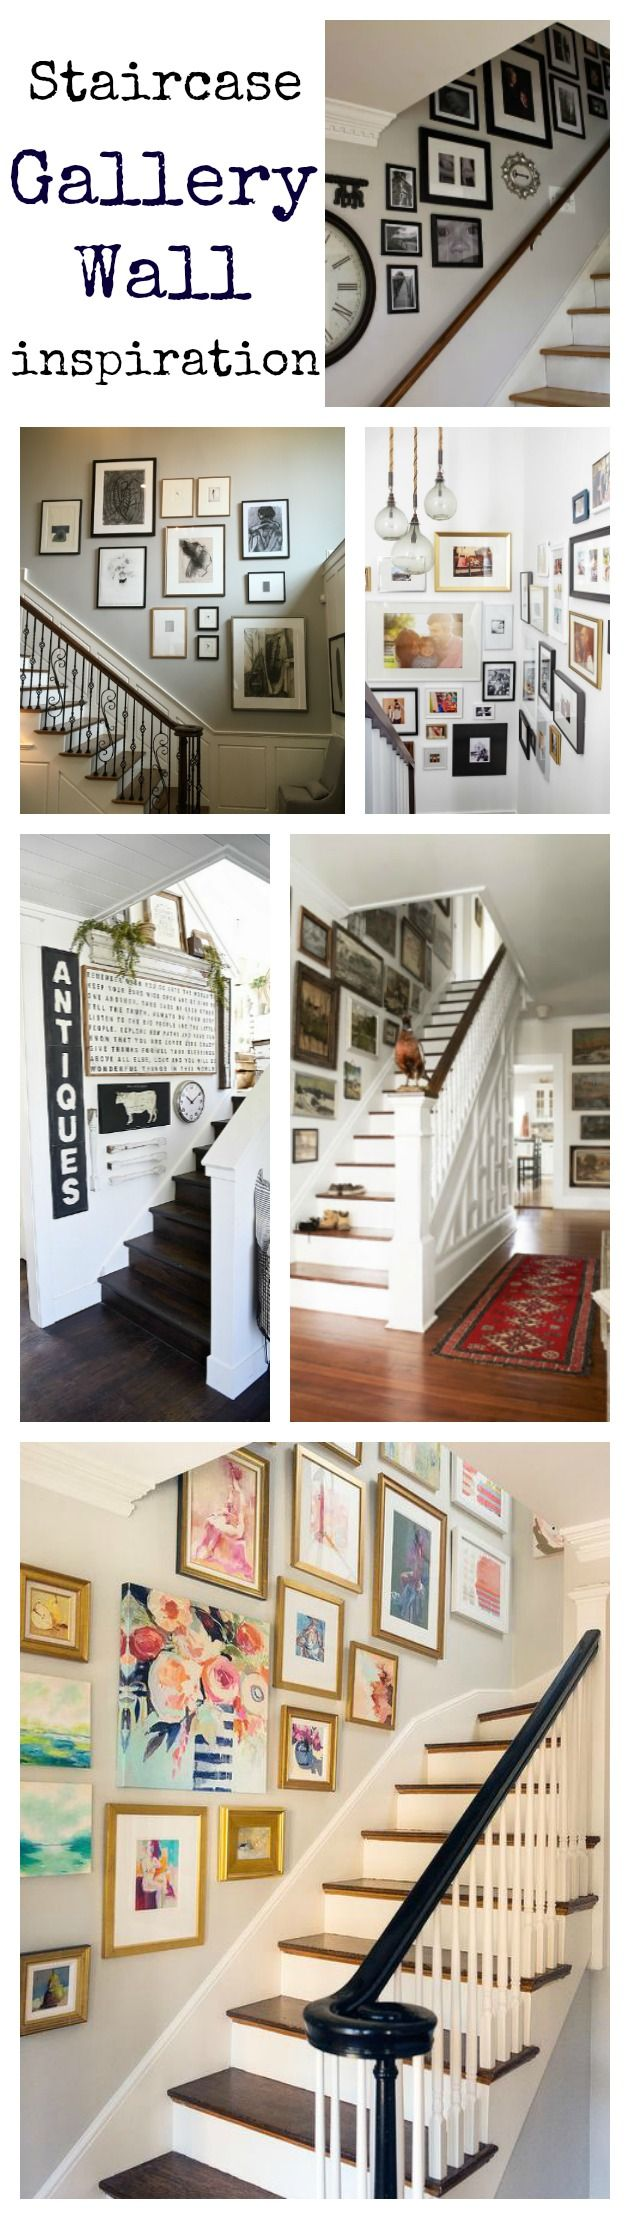 Best 25+ Decorating staircase ideas on Pinterest | Diy staircase ...